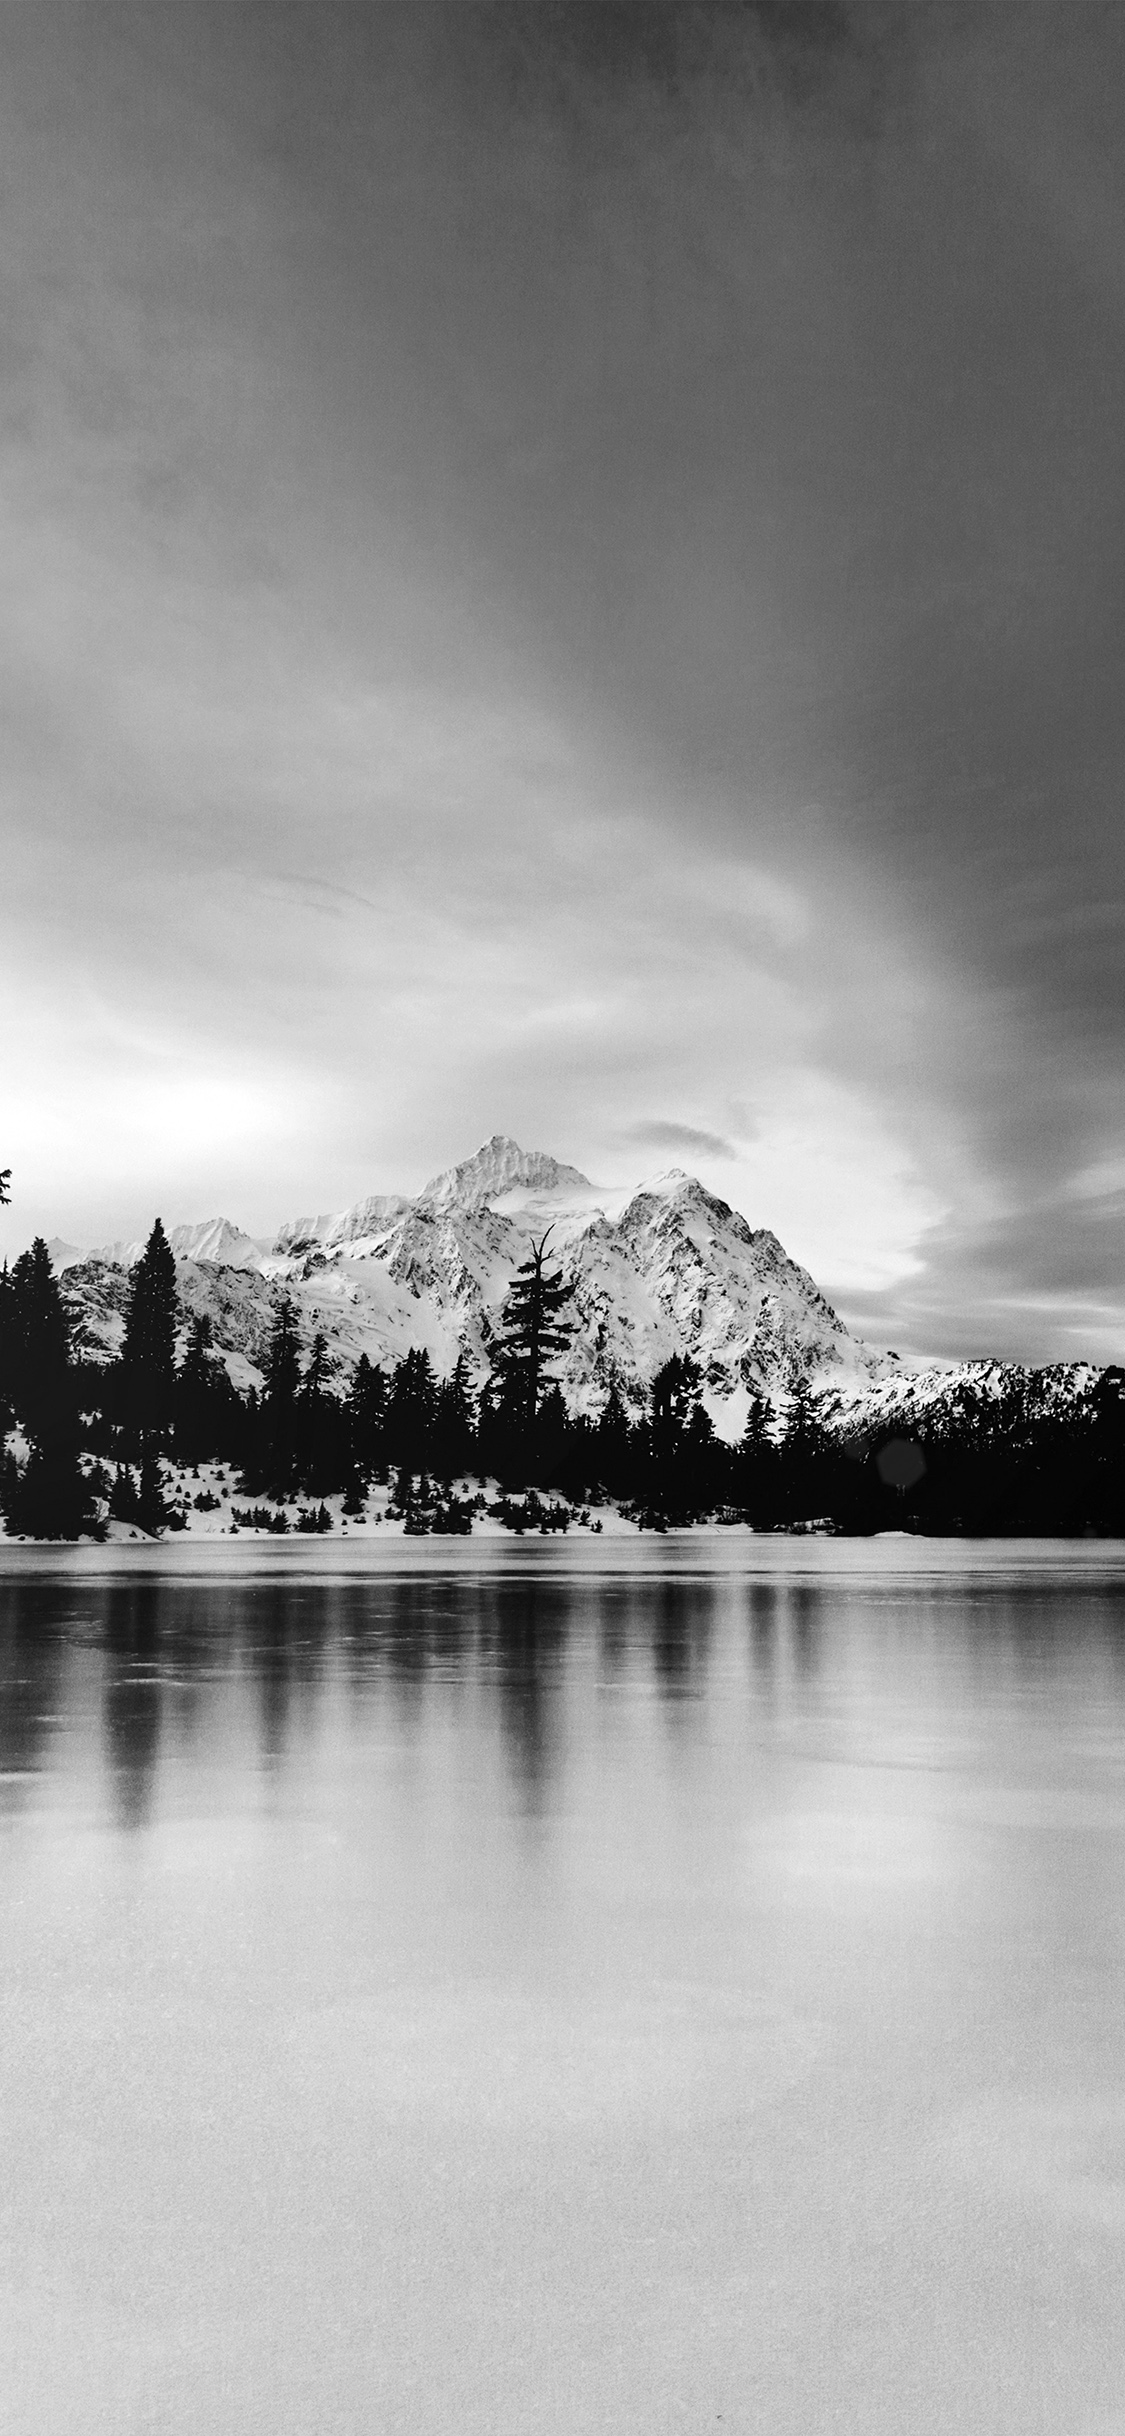 Hd Wallpapers Imac 27 Ni39 Frozen Lake Winter Snow Wood Forest Cold Bw Dark